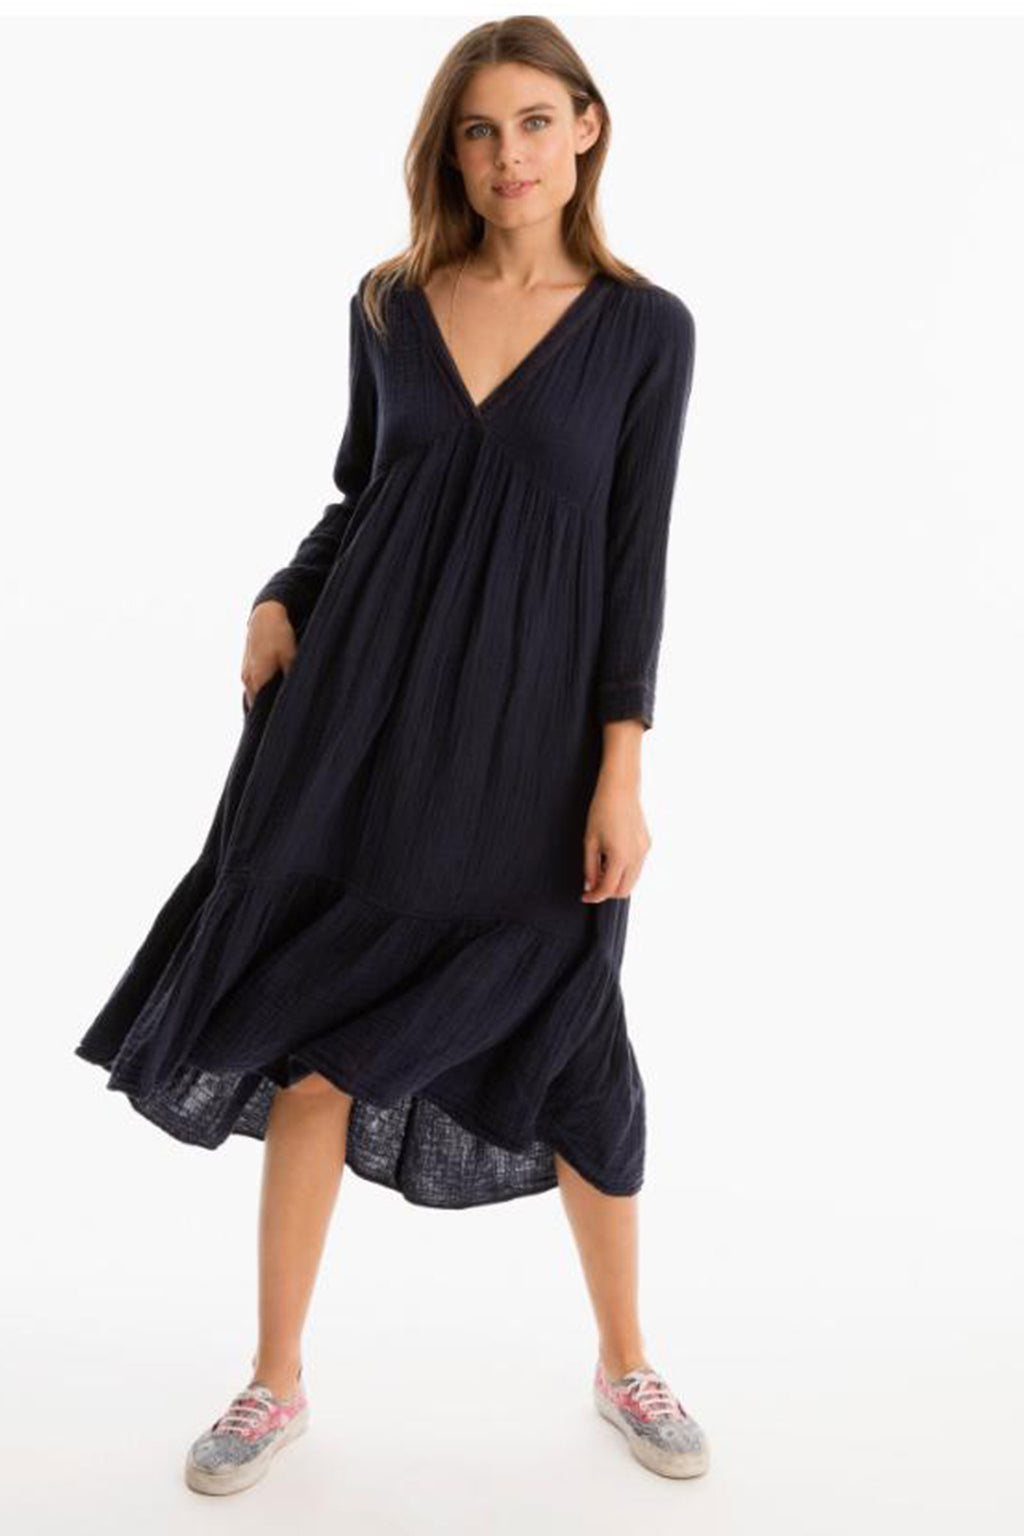 Xirena Cotton Dayley Dress in Navy Night